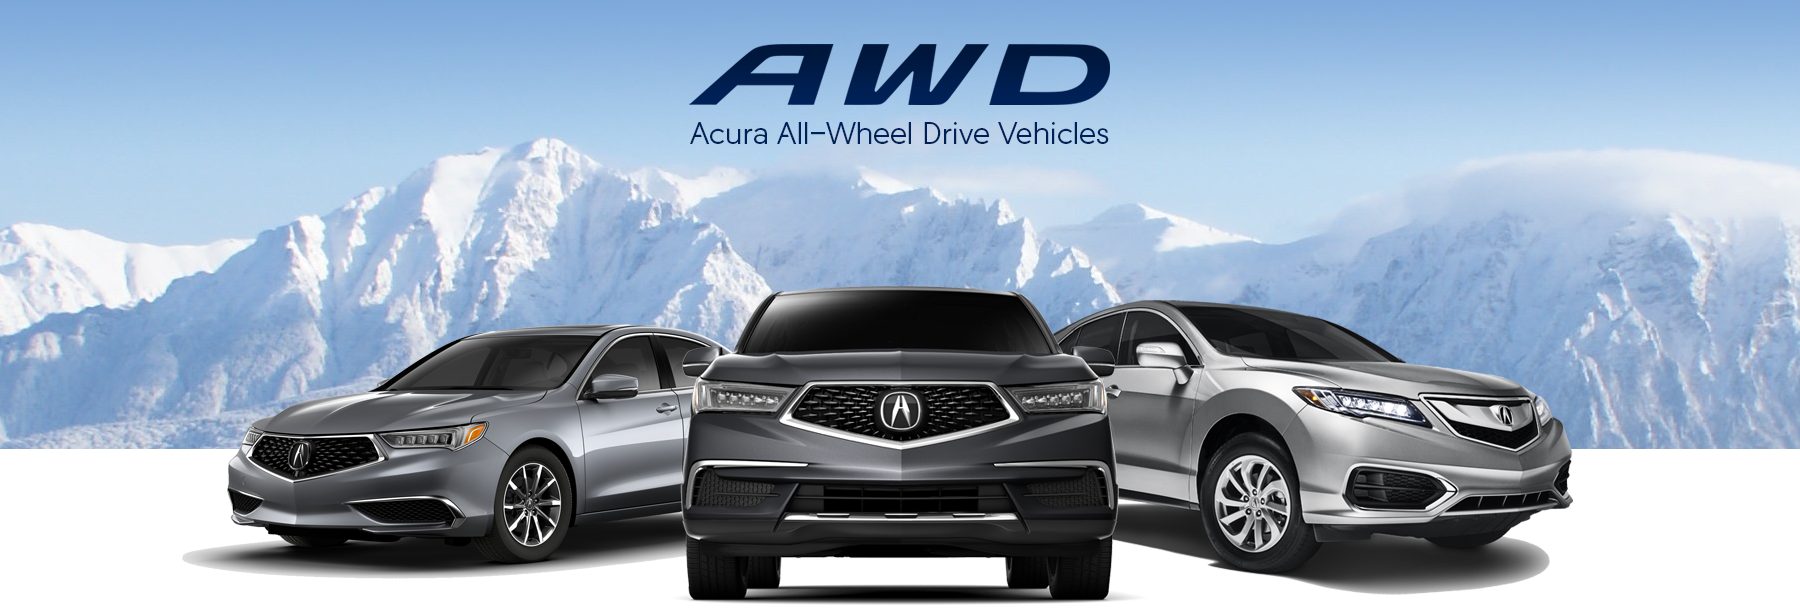 Acura All-Wheel Drive Vehicles